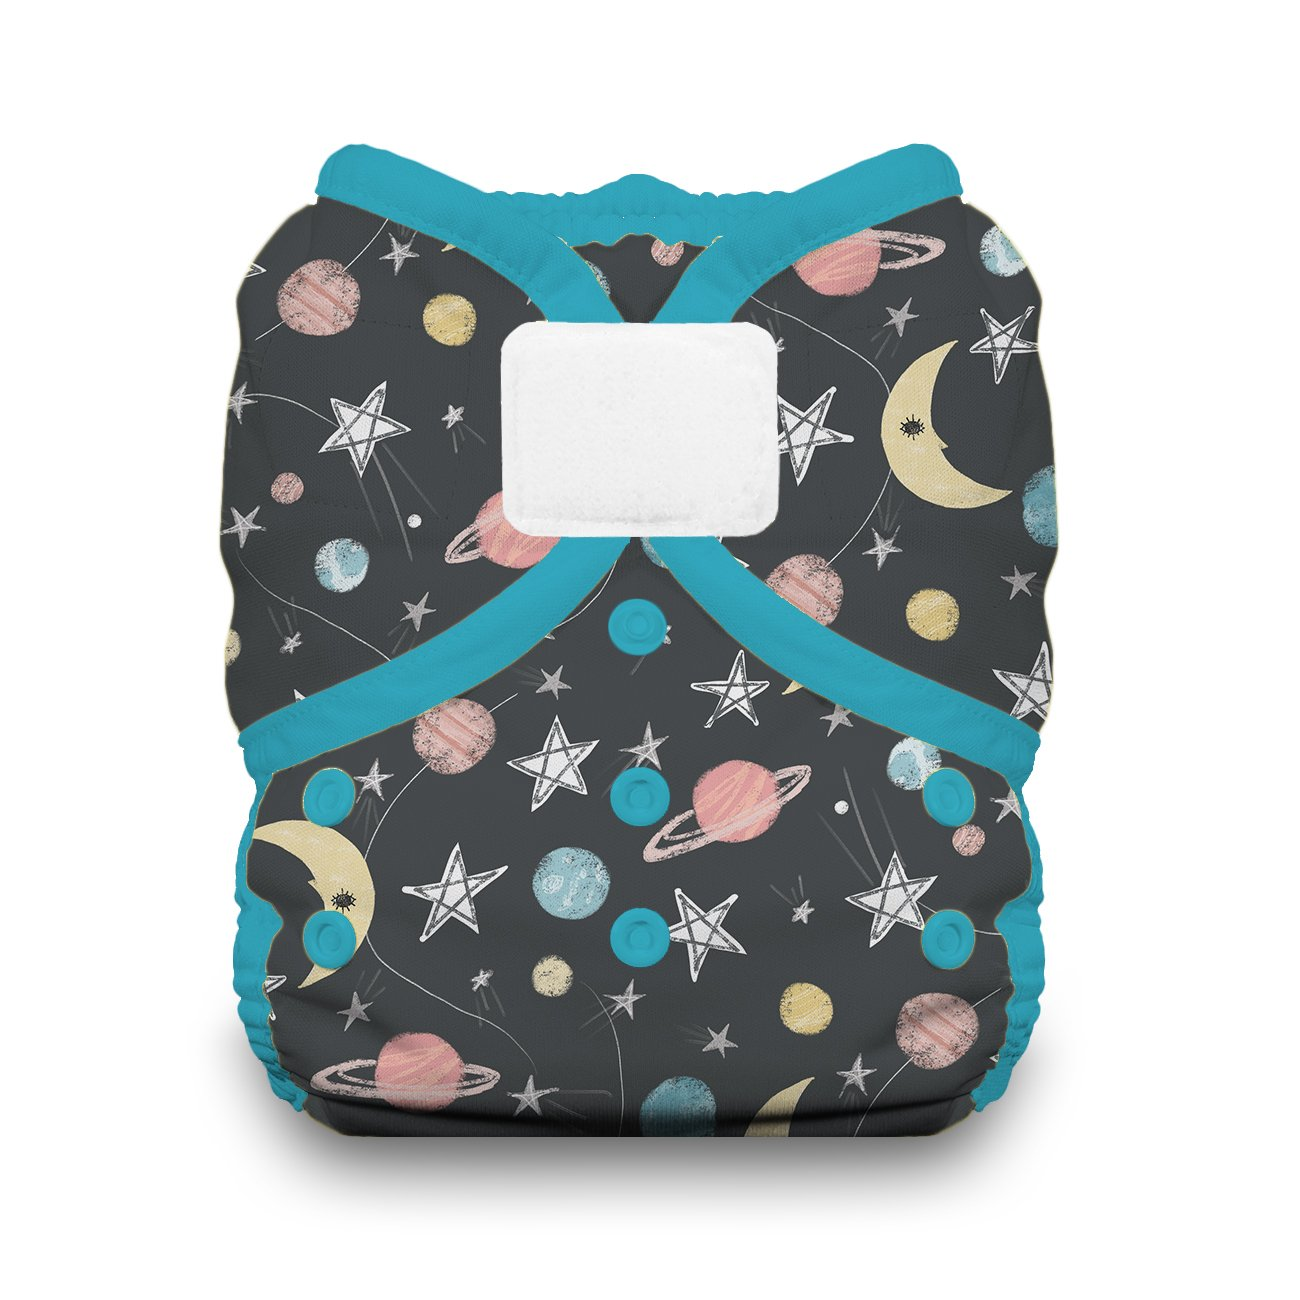 Thirsties Duo Wrap Cloth Diaper Cover, Hook and Loop Closure, Stargazer Size Two (18-40 lbs) by Thirsties